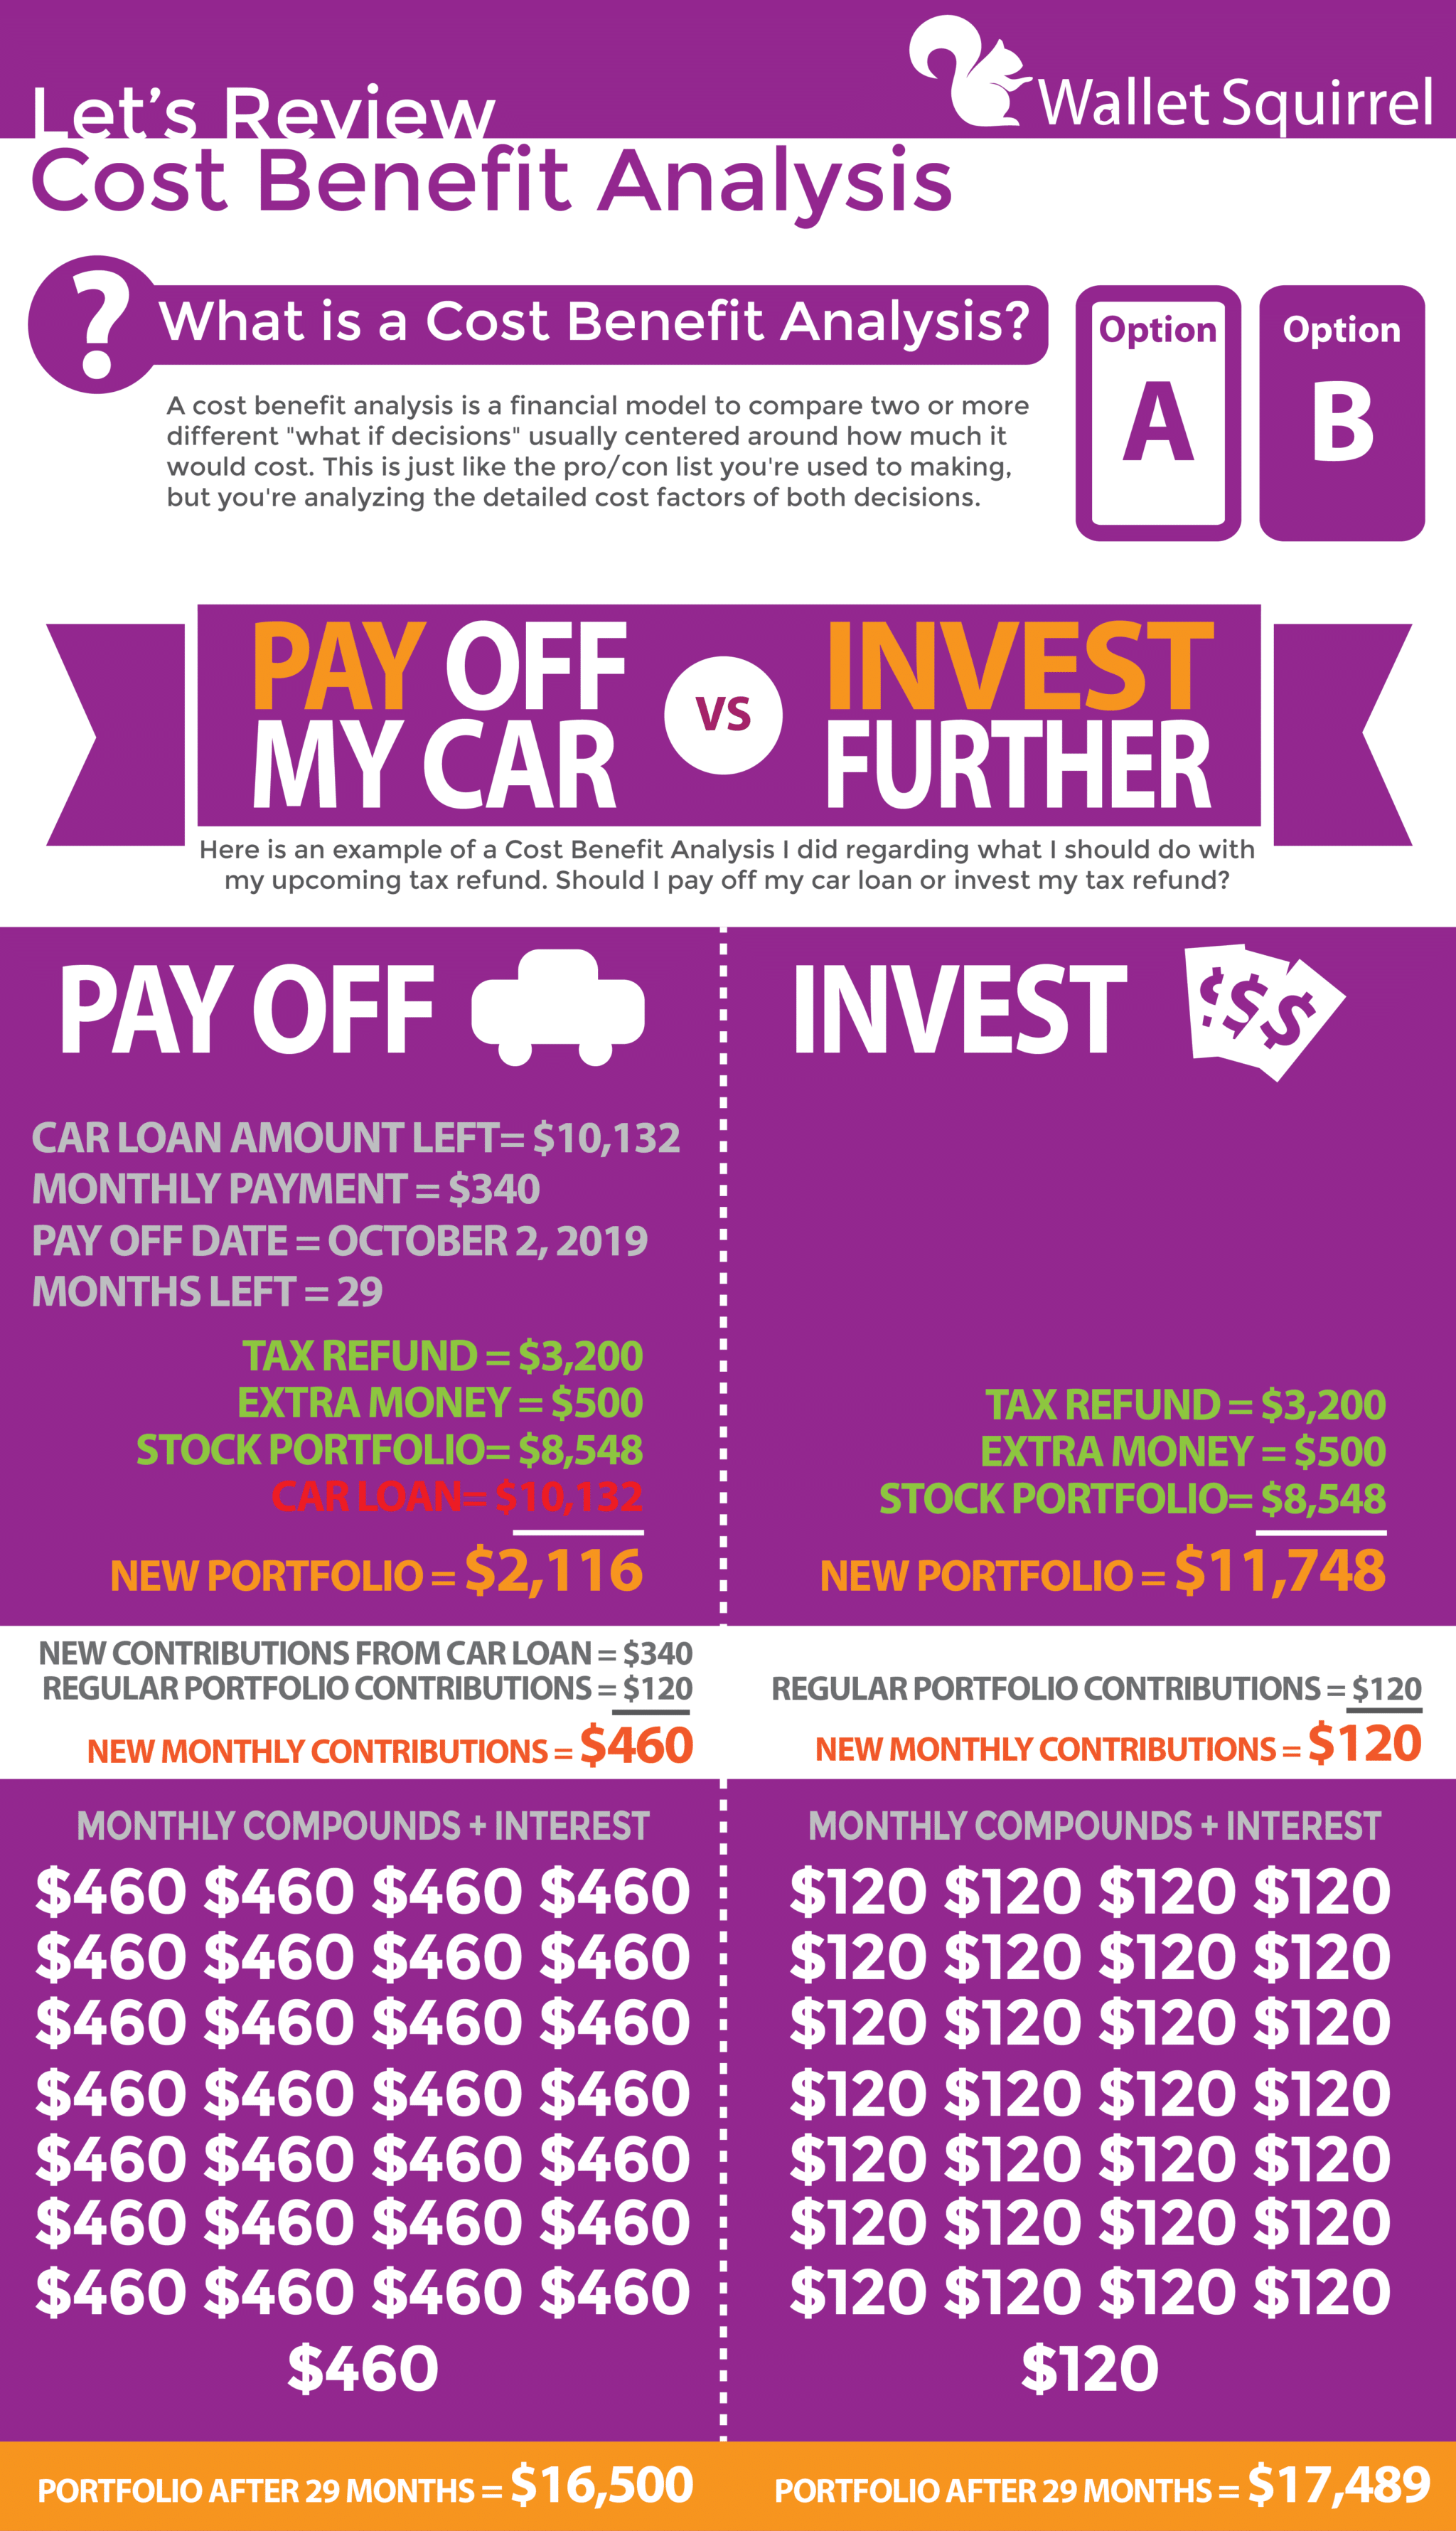 cost benefit analysis example - pay off my car or invest?